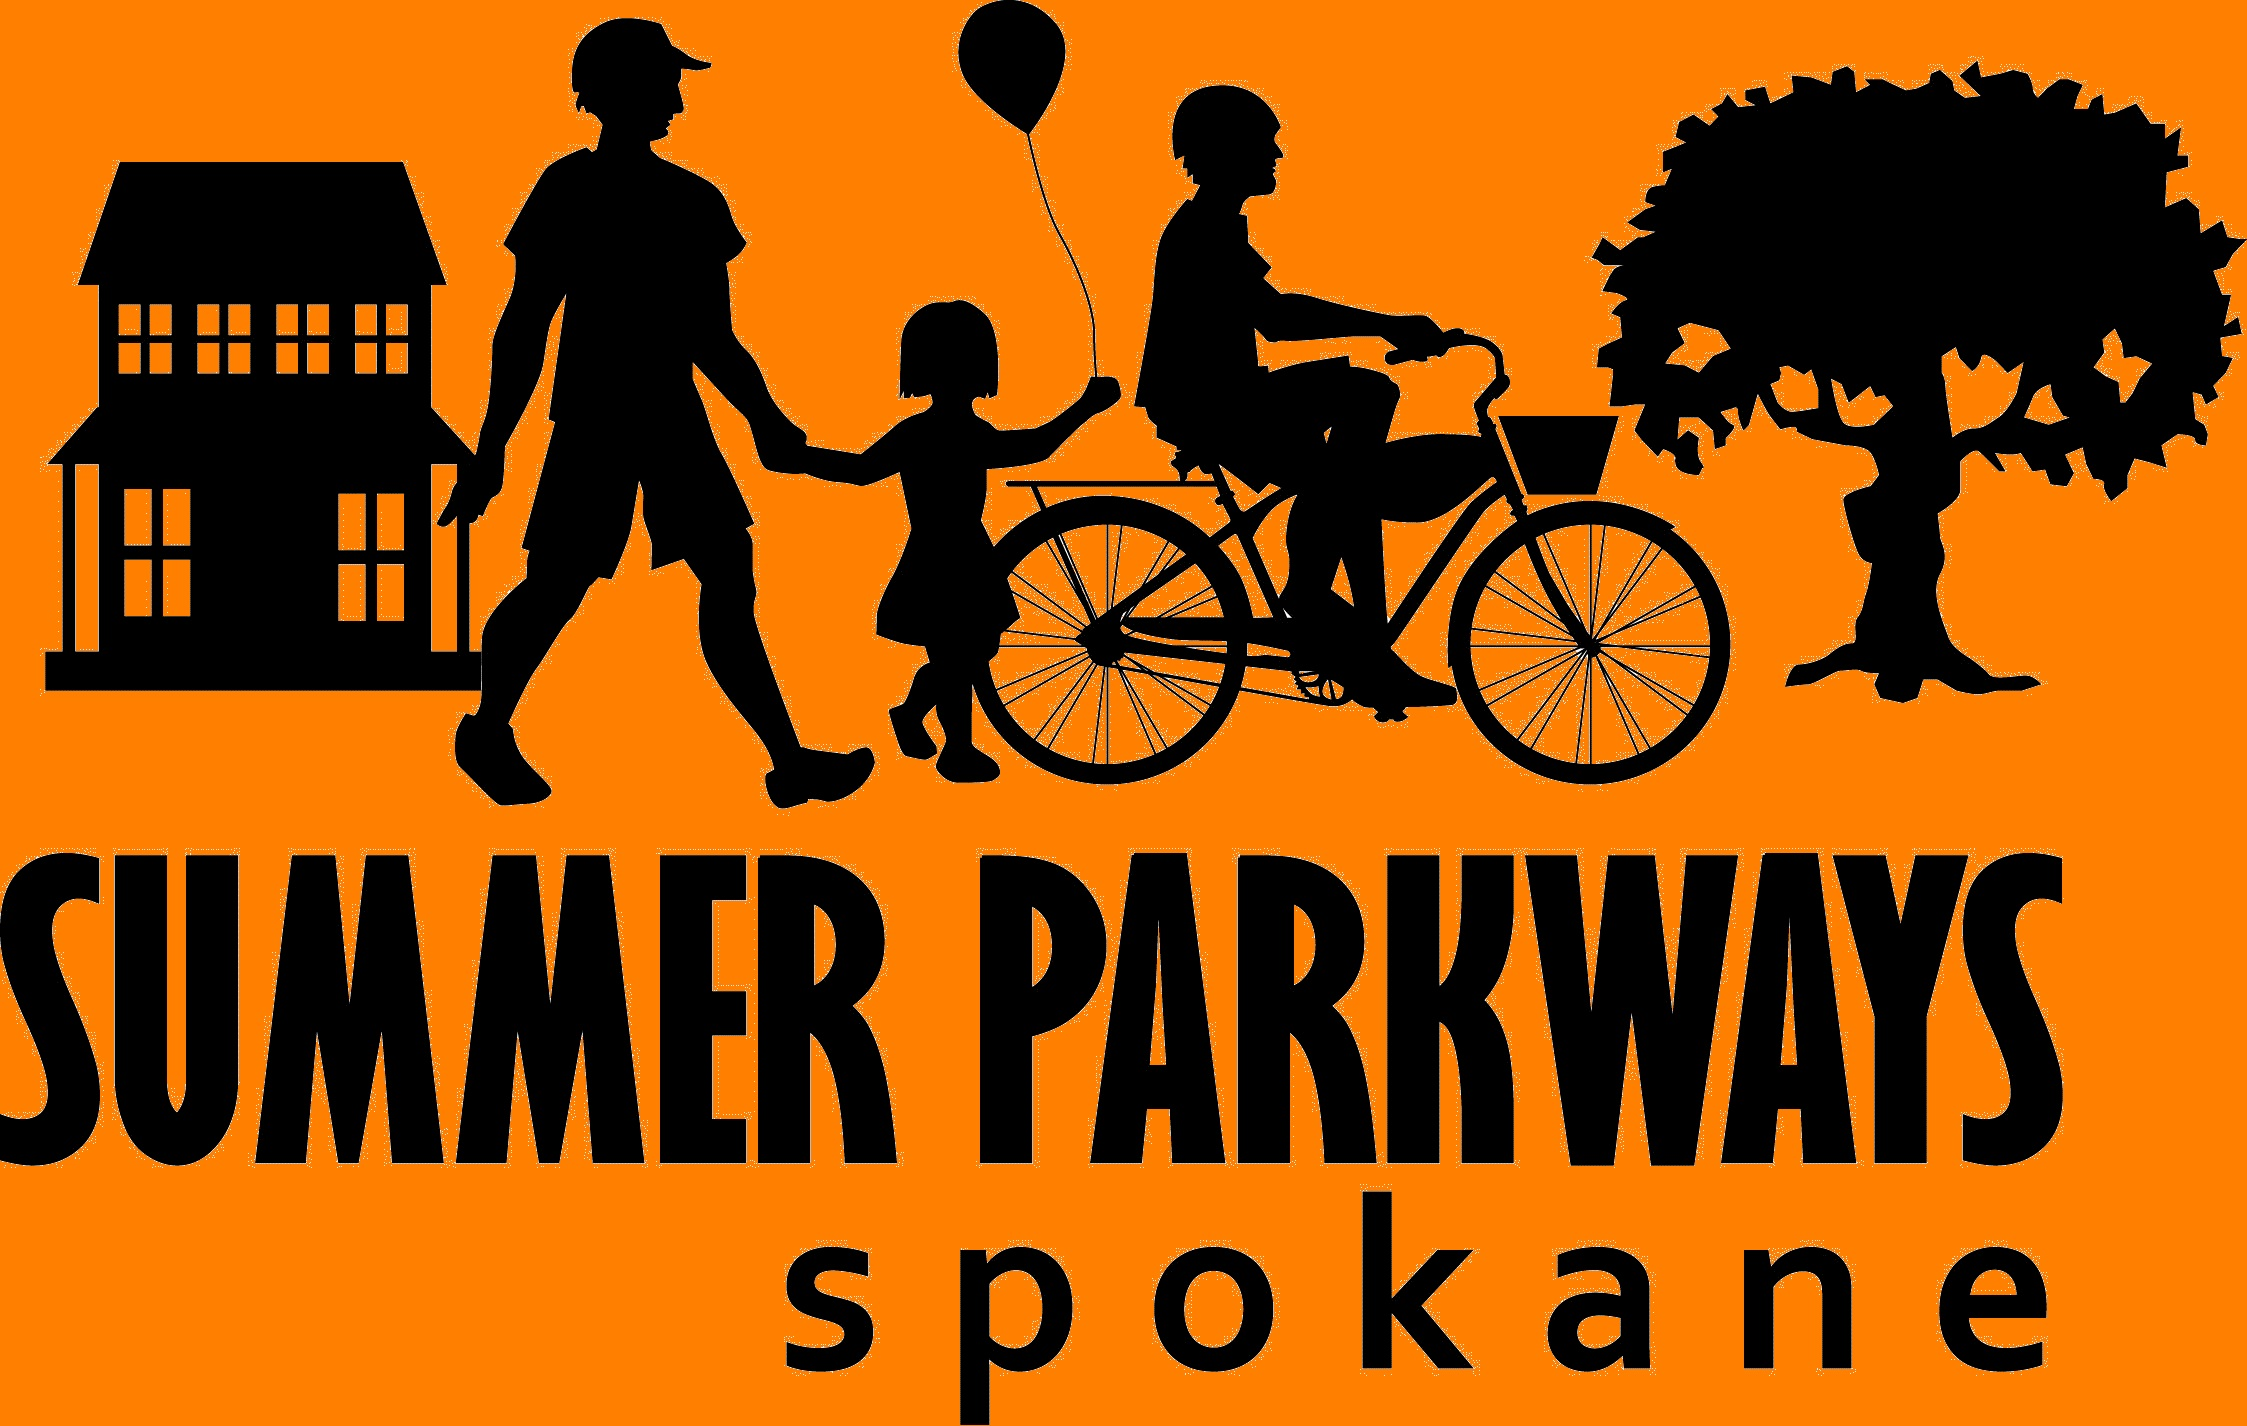 3 Reasons to Roll with Summer Parkways